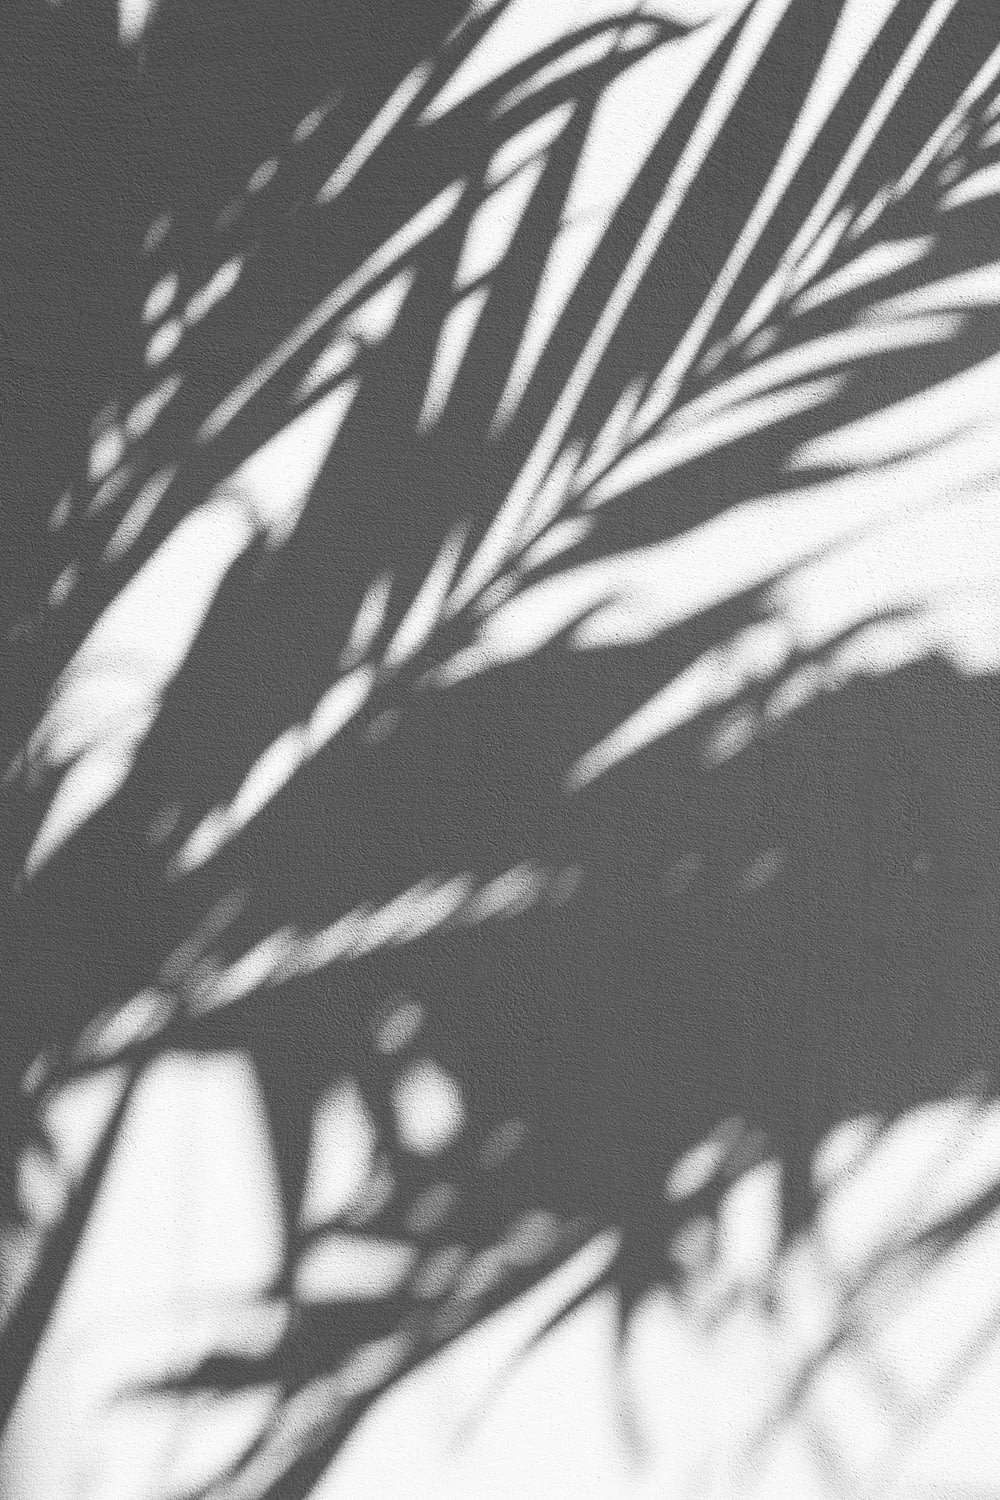 silhouette of palm tree